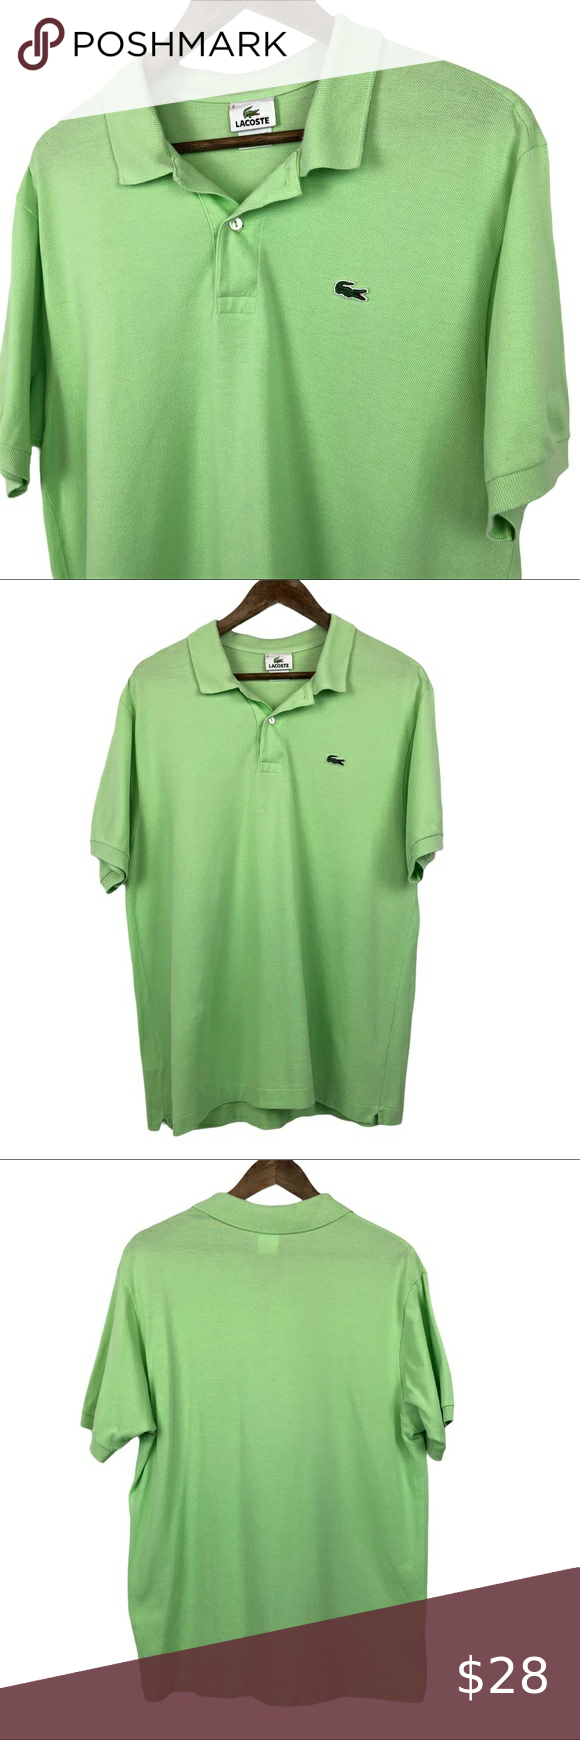 Lacoste Green Polo Shirt Size 6 Large Men S Green Polo Shirts Lacoste Shirts